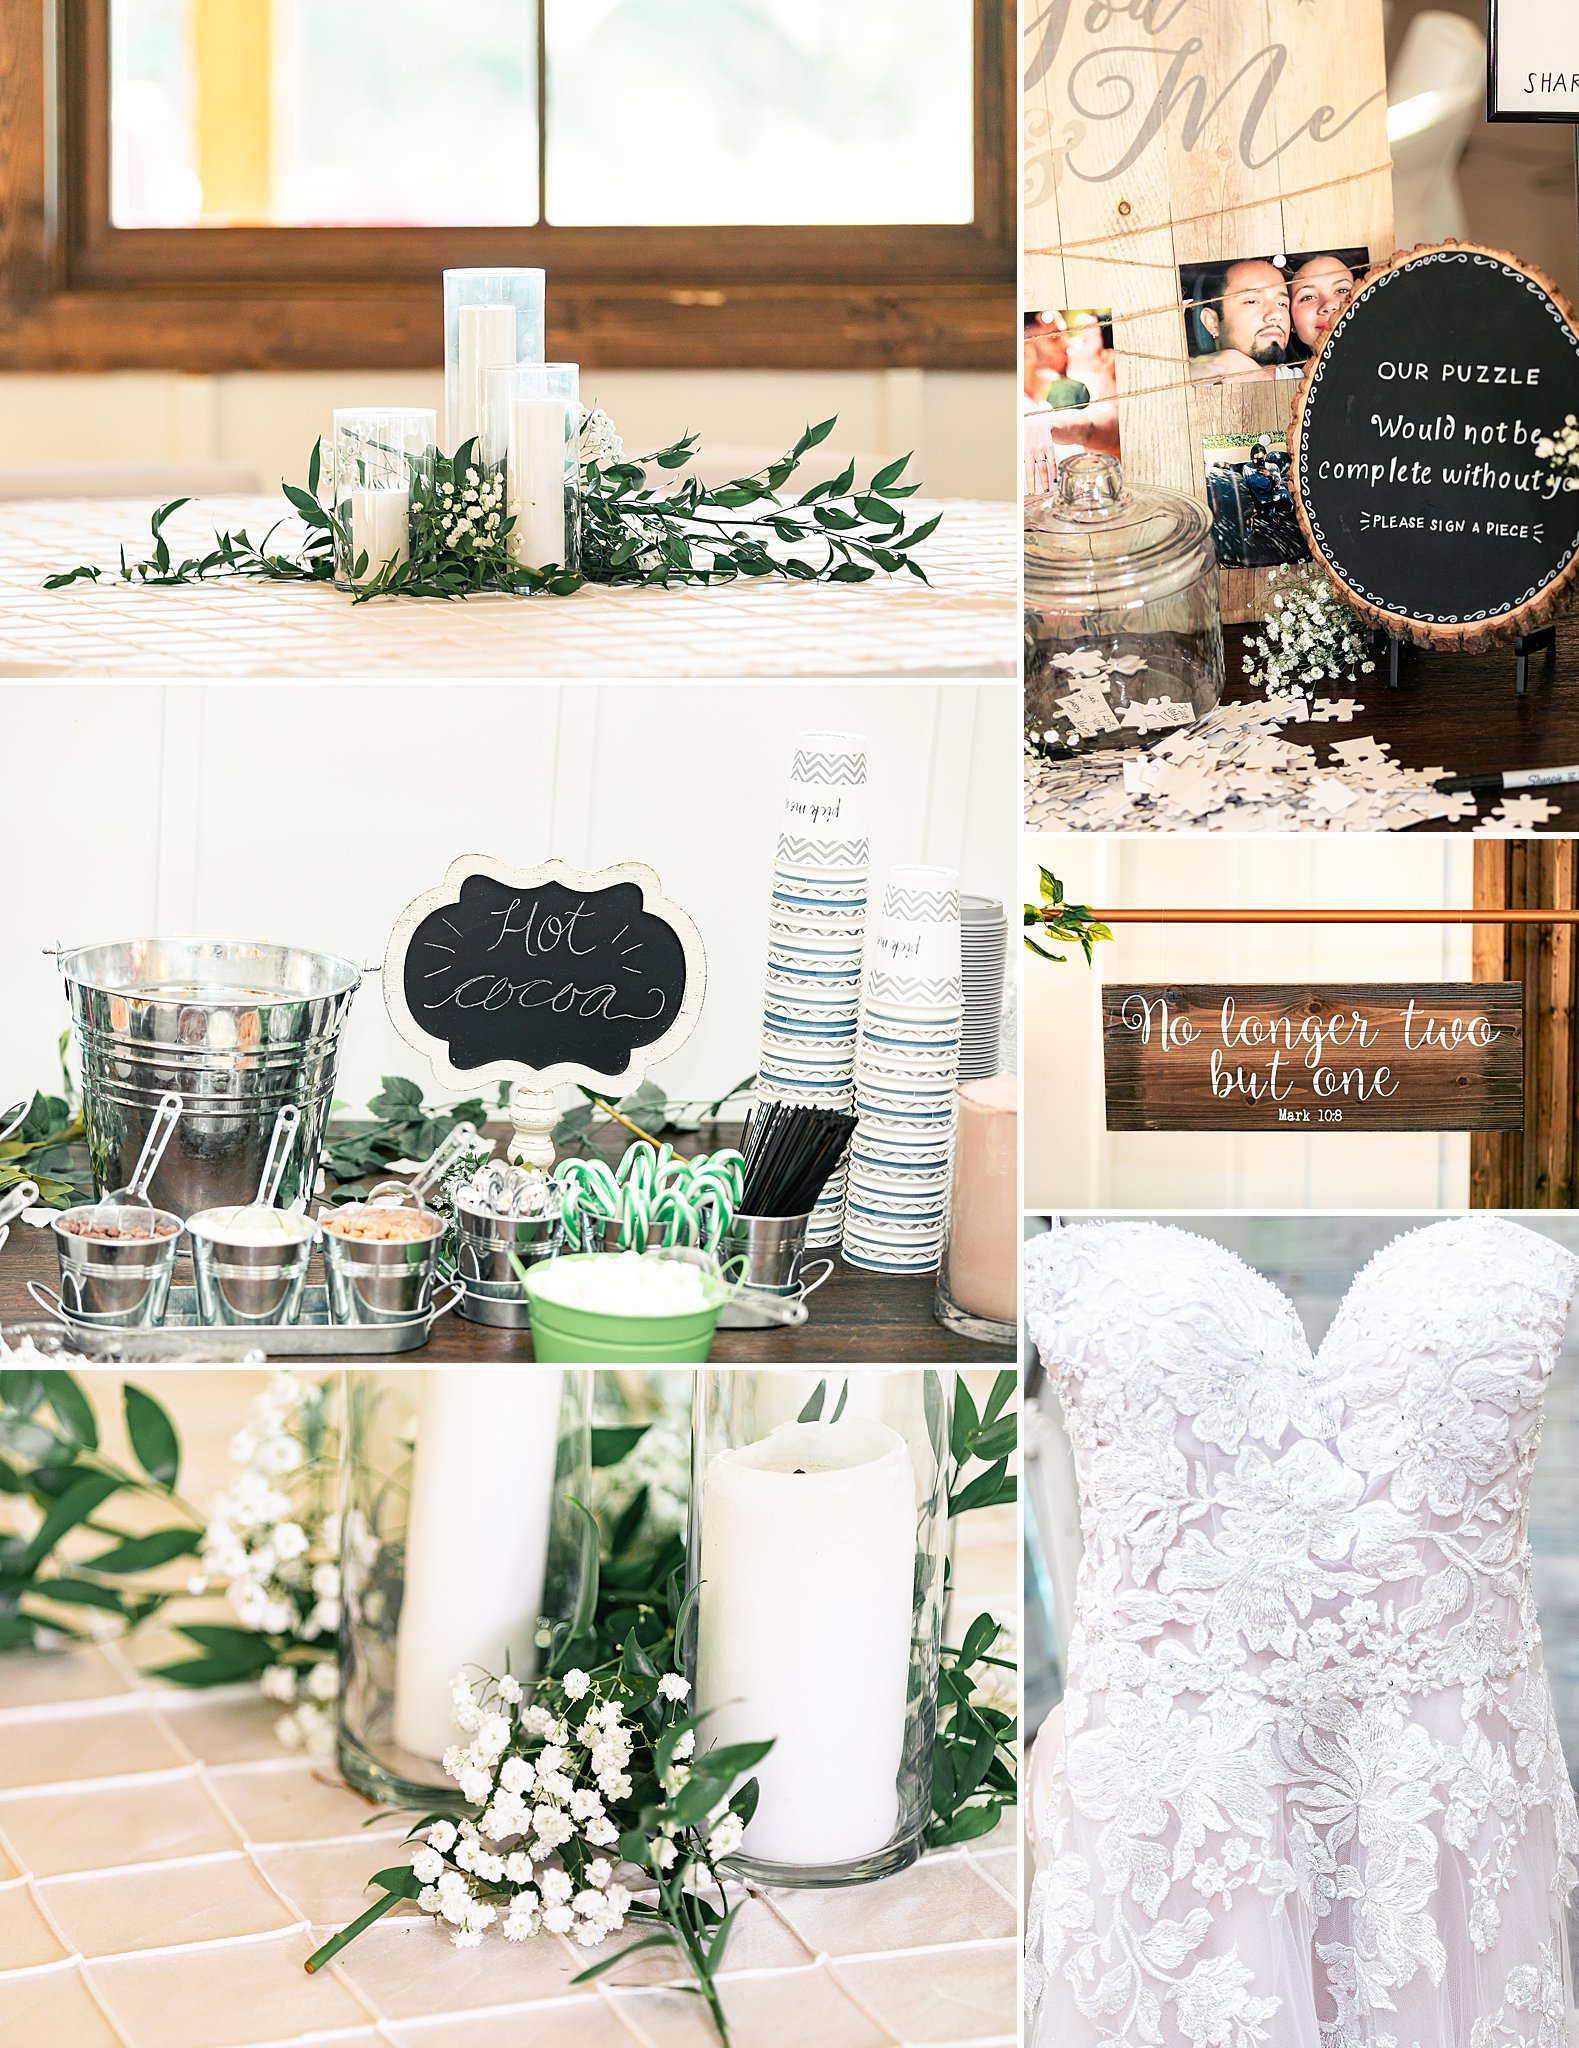 Carly-Barton-Photography-Texas-Wedding-Photographer-Western-Sky-Wedding-Event-Venue-Emerald-Green-Theme_0032.jpg